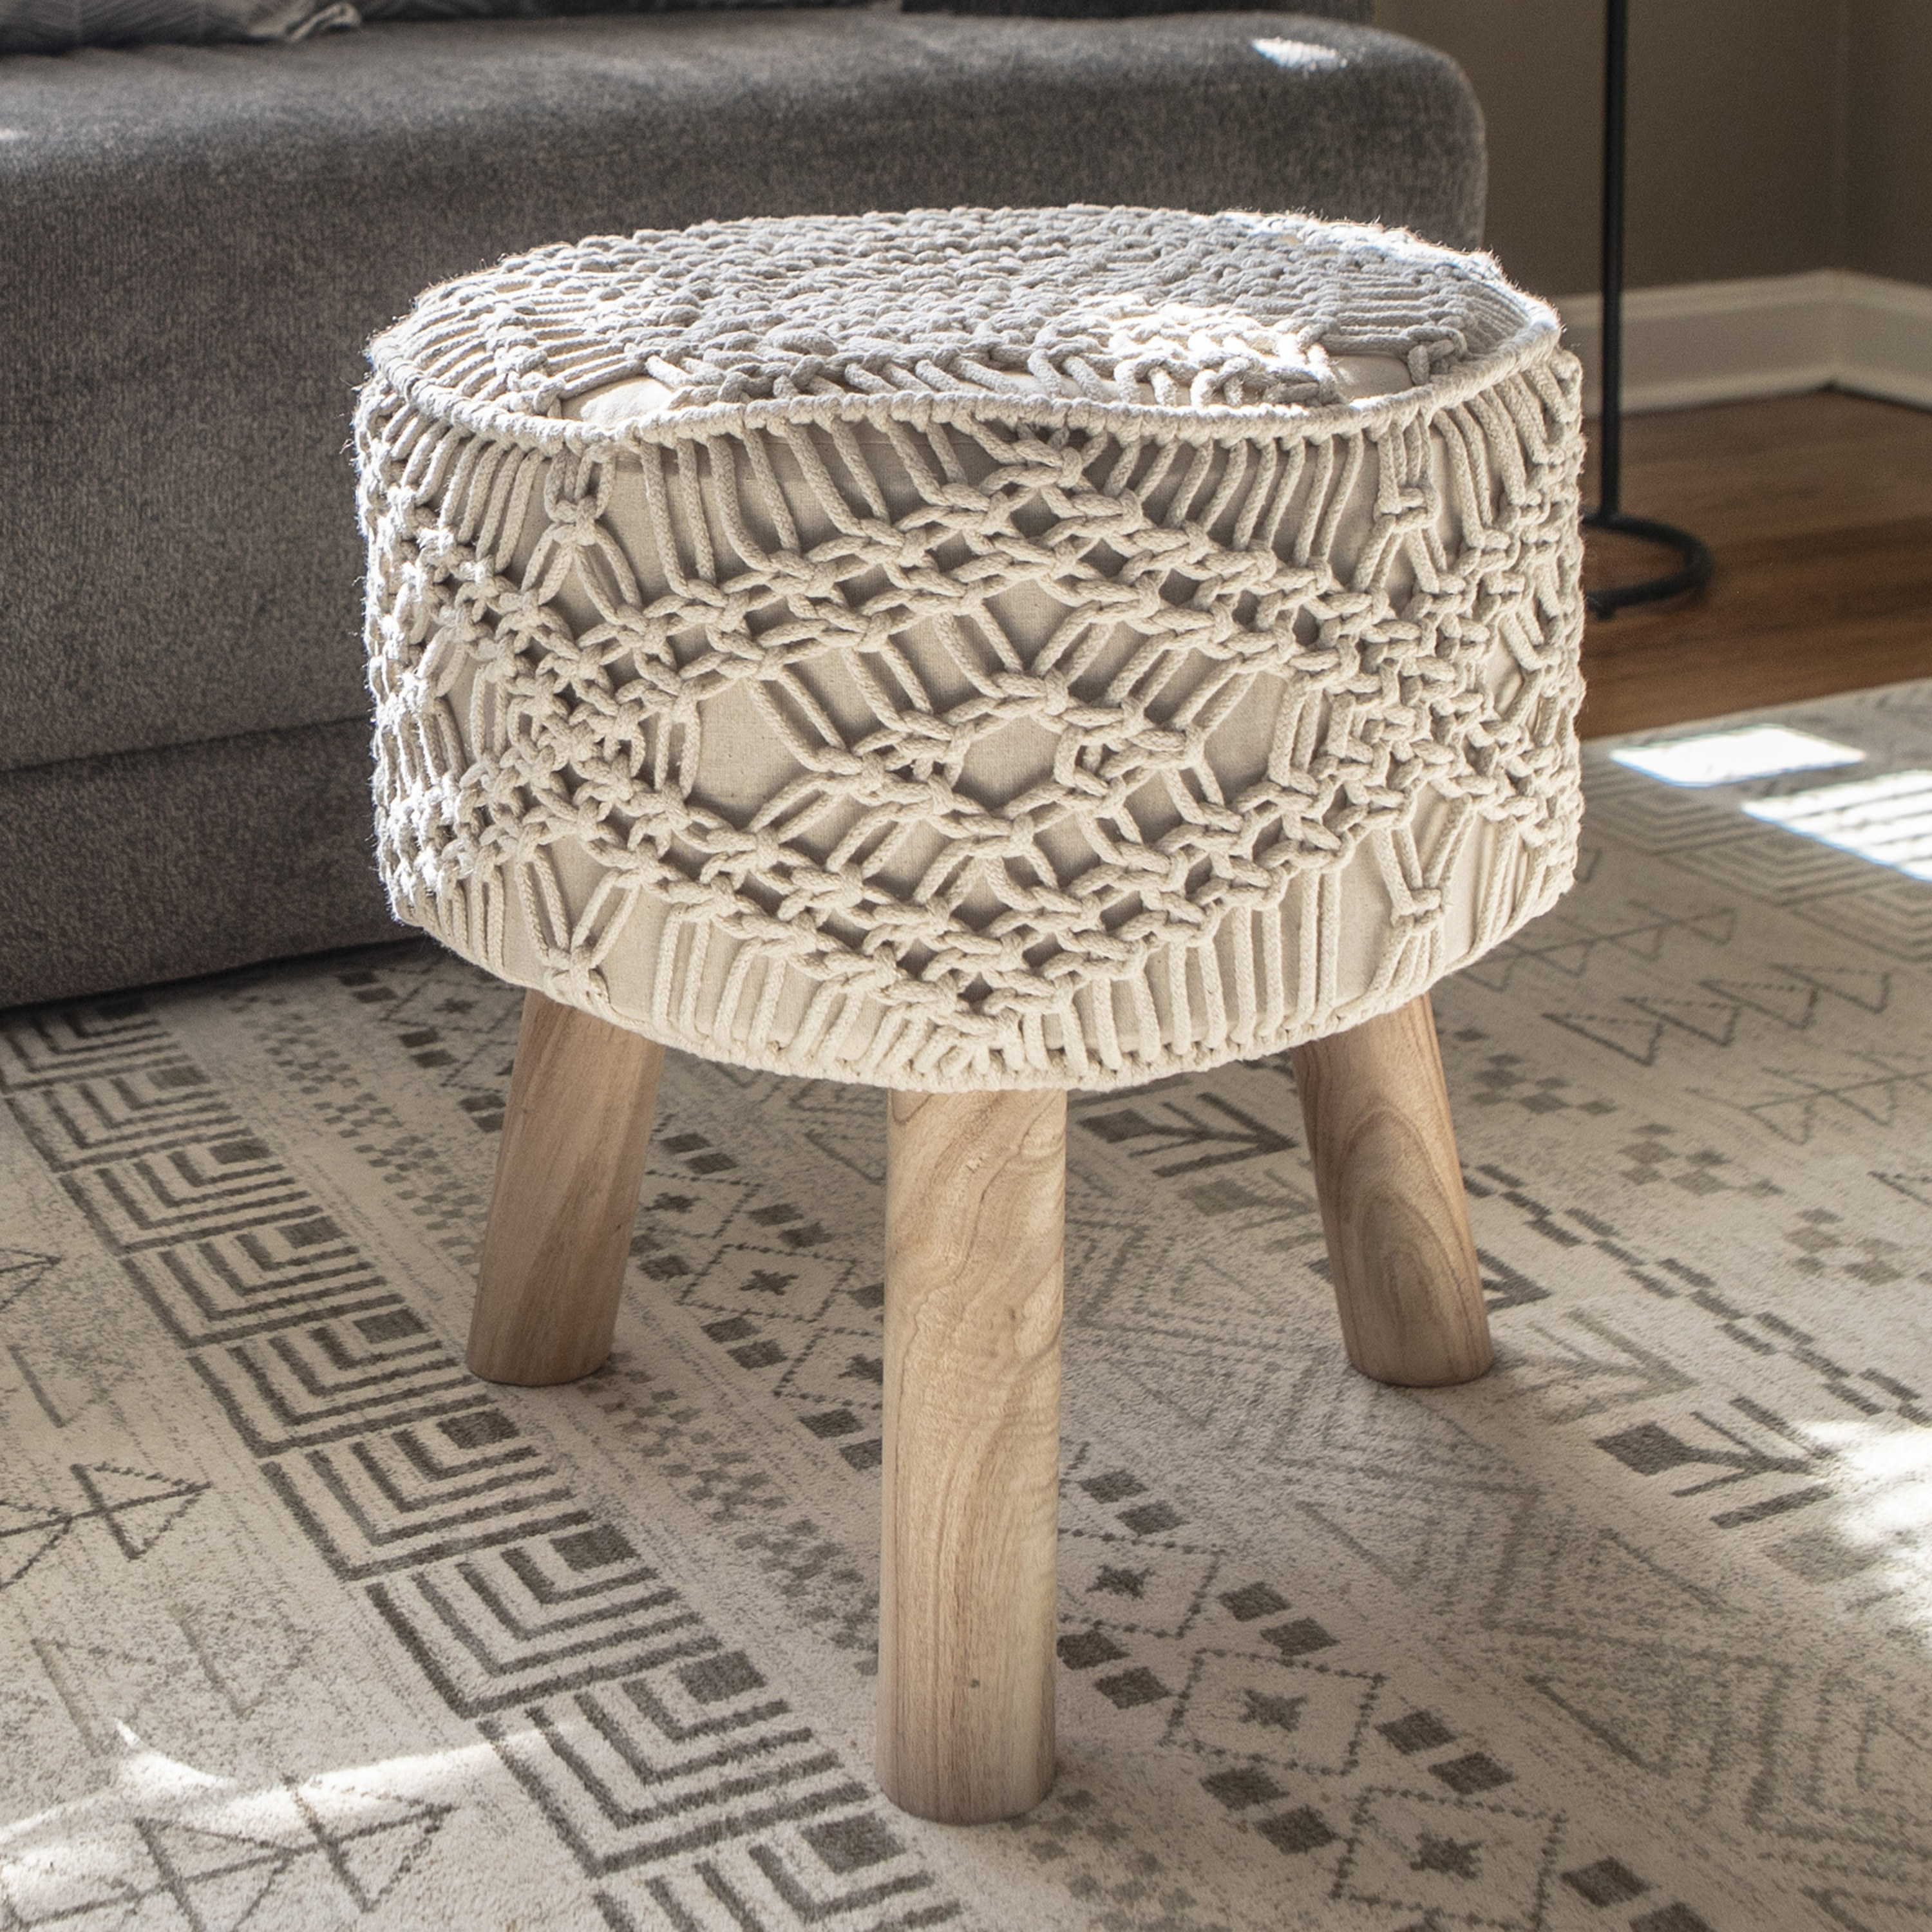 White and brown ottoman in boho living room